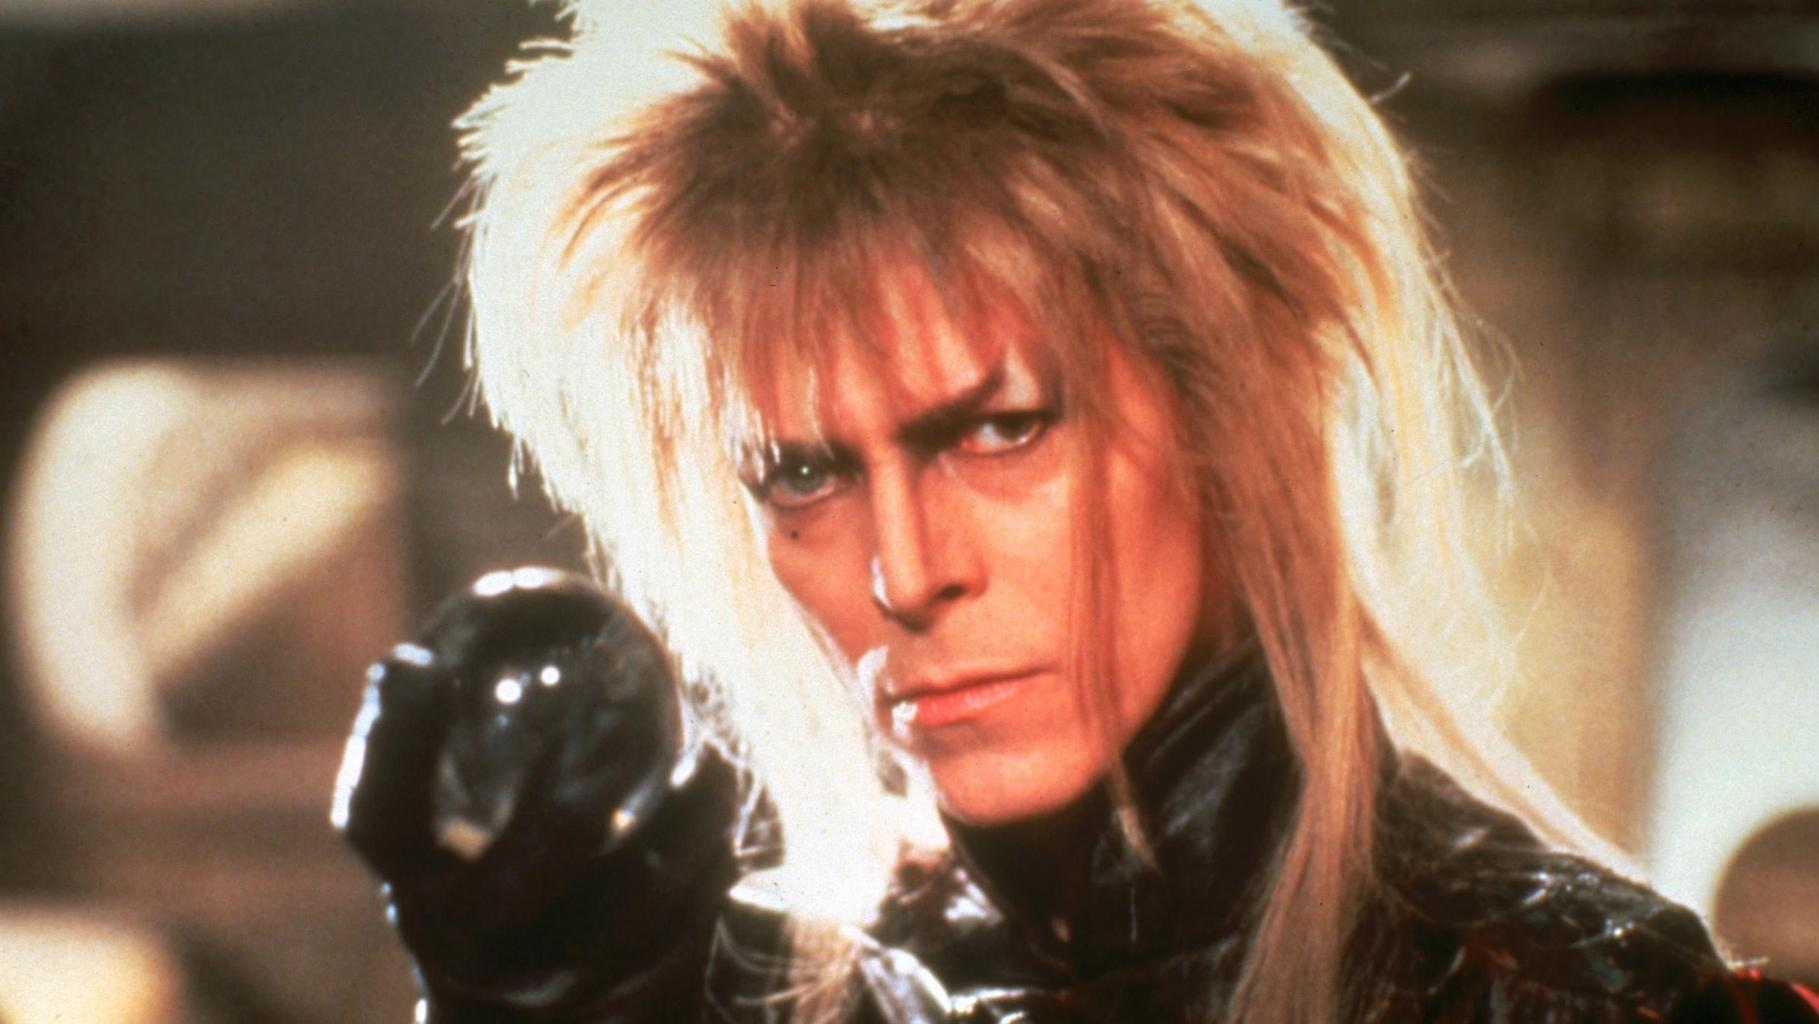 Bowie Labyrinth 12 Of The Best Musical And Dance Films From The 80s - Which Is Your Favourite?